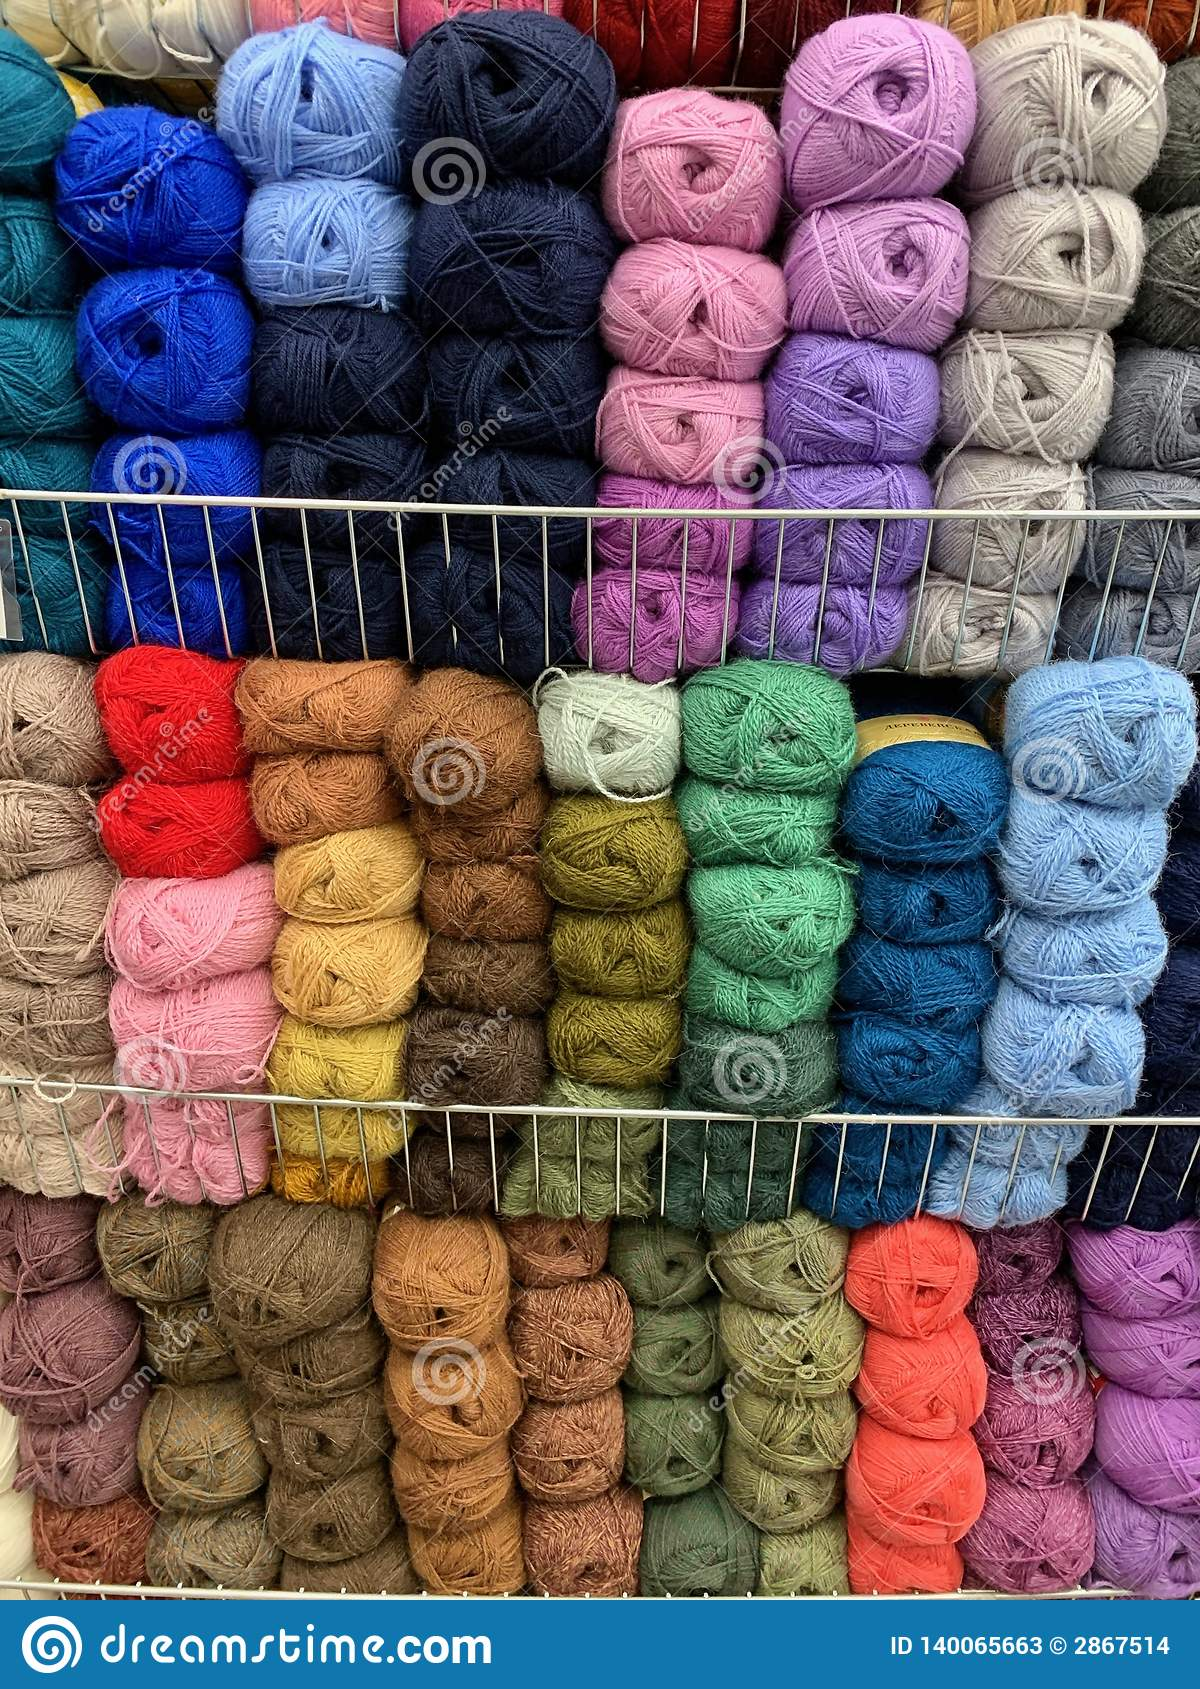 Multicolored, wool ball yarn in a store. ready for needlework.